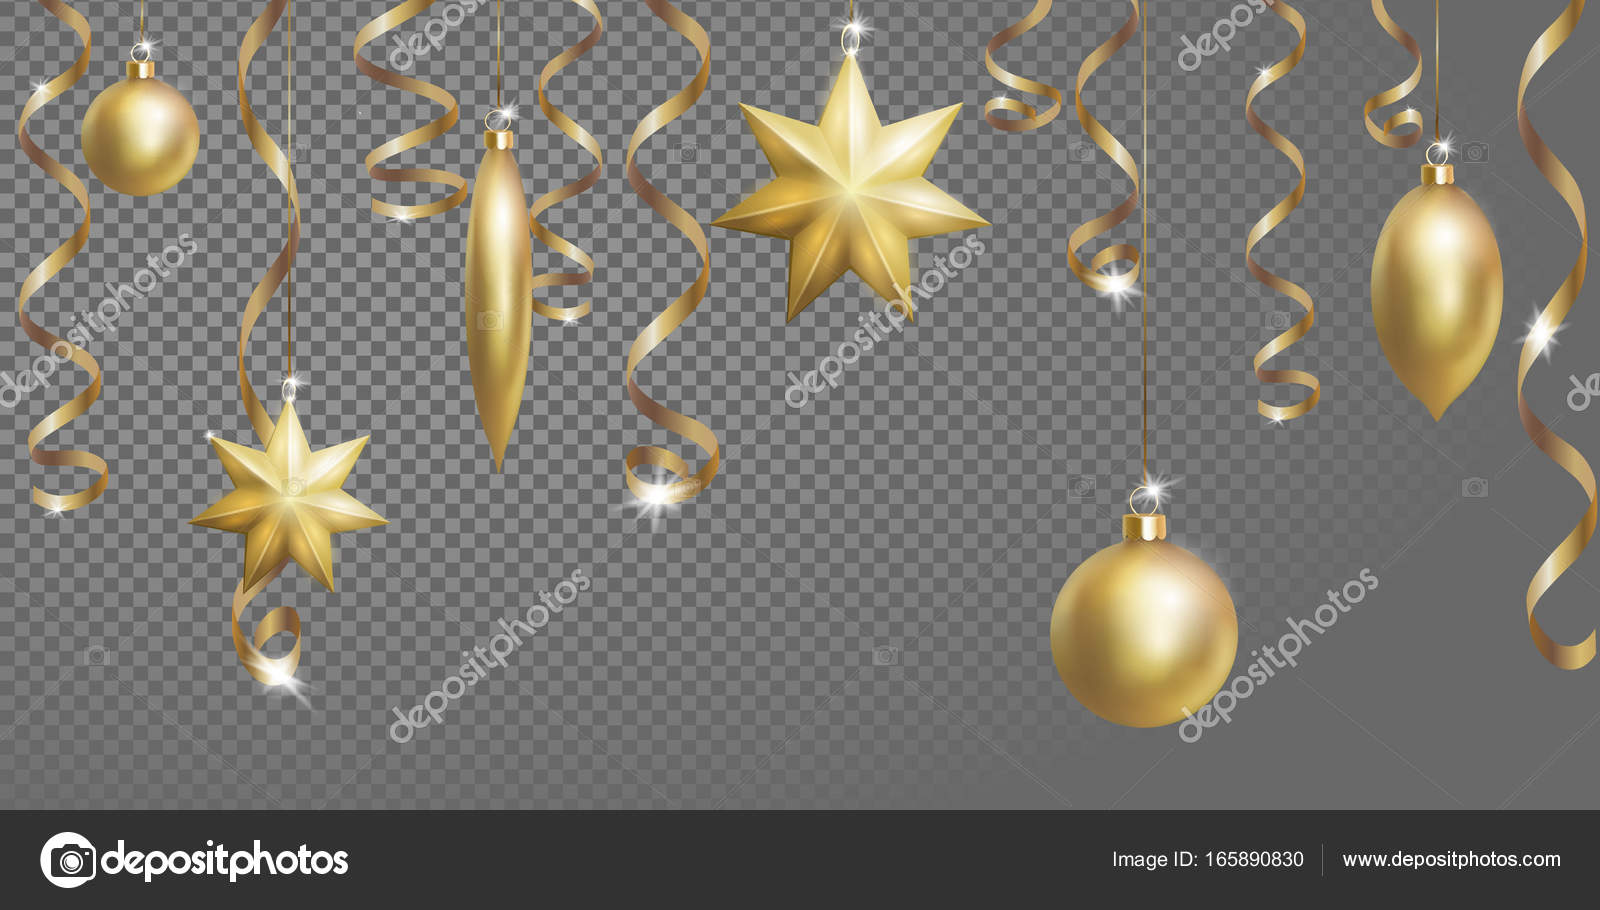 christmas seamless border banner template ball fir toys star golden silver sparkle serpentine streamer new year tree decoration gold transparent grid 3d